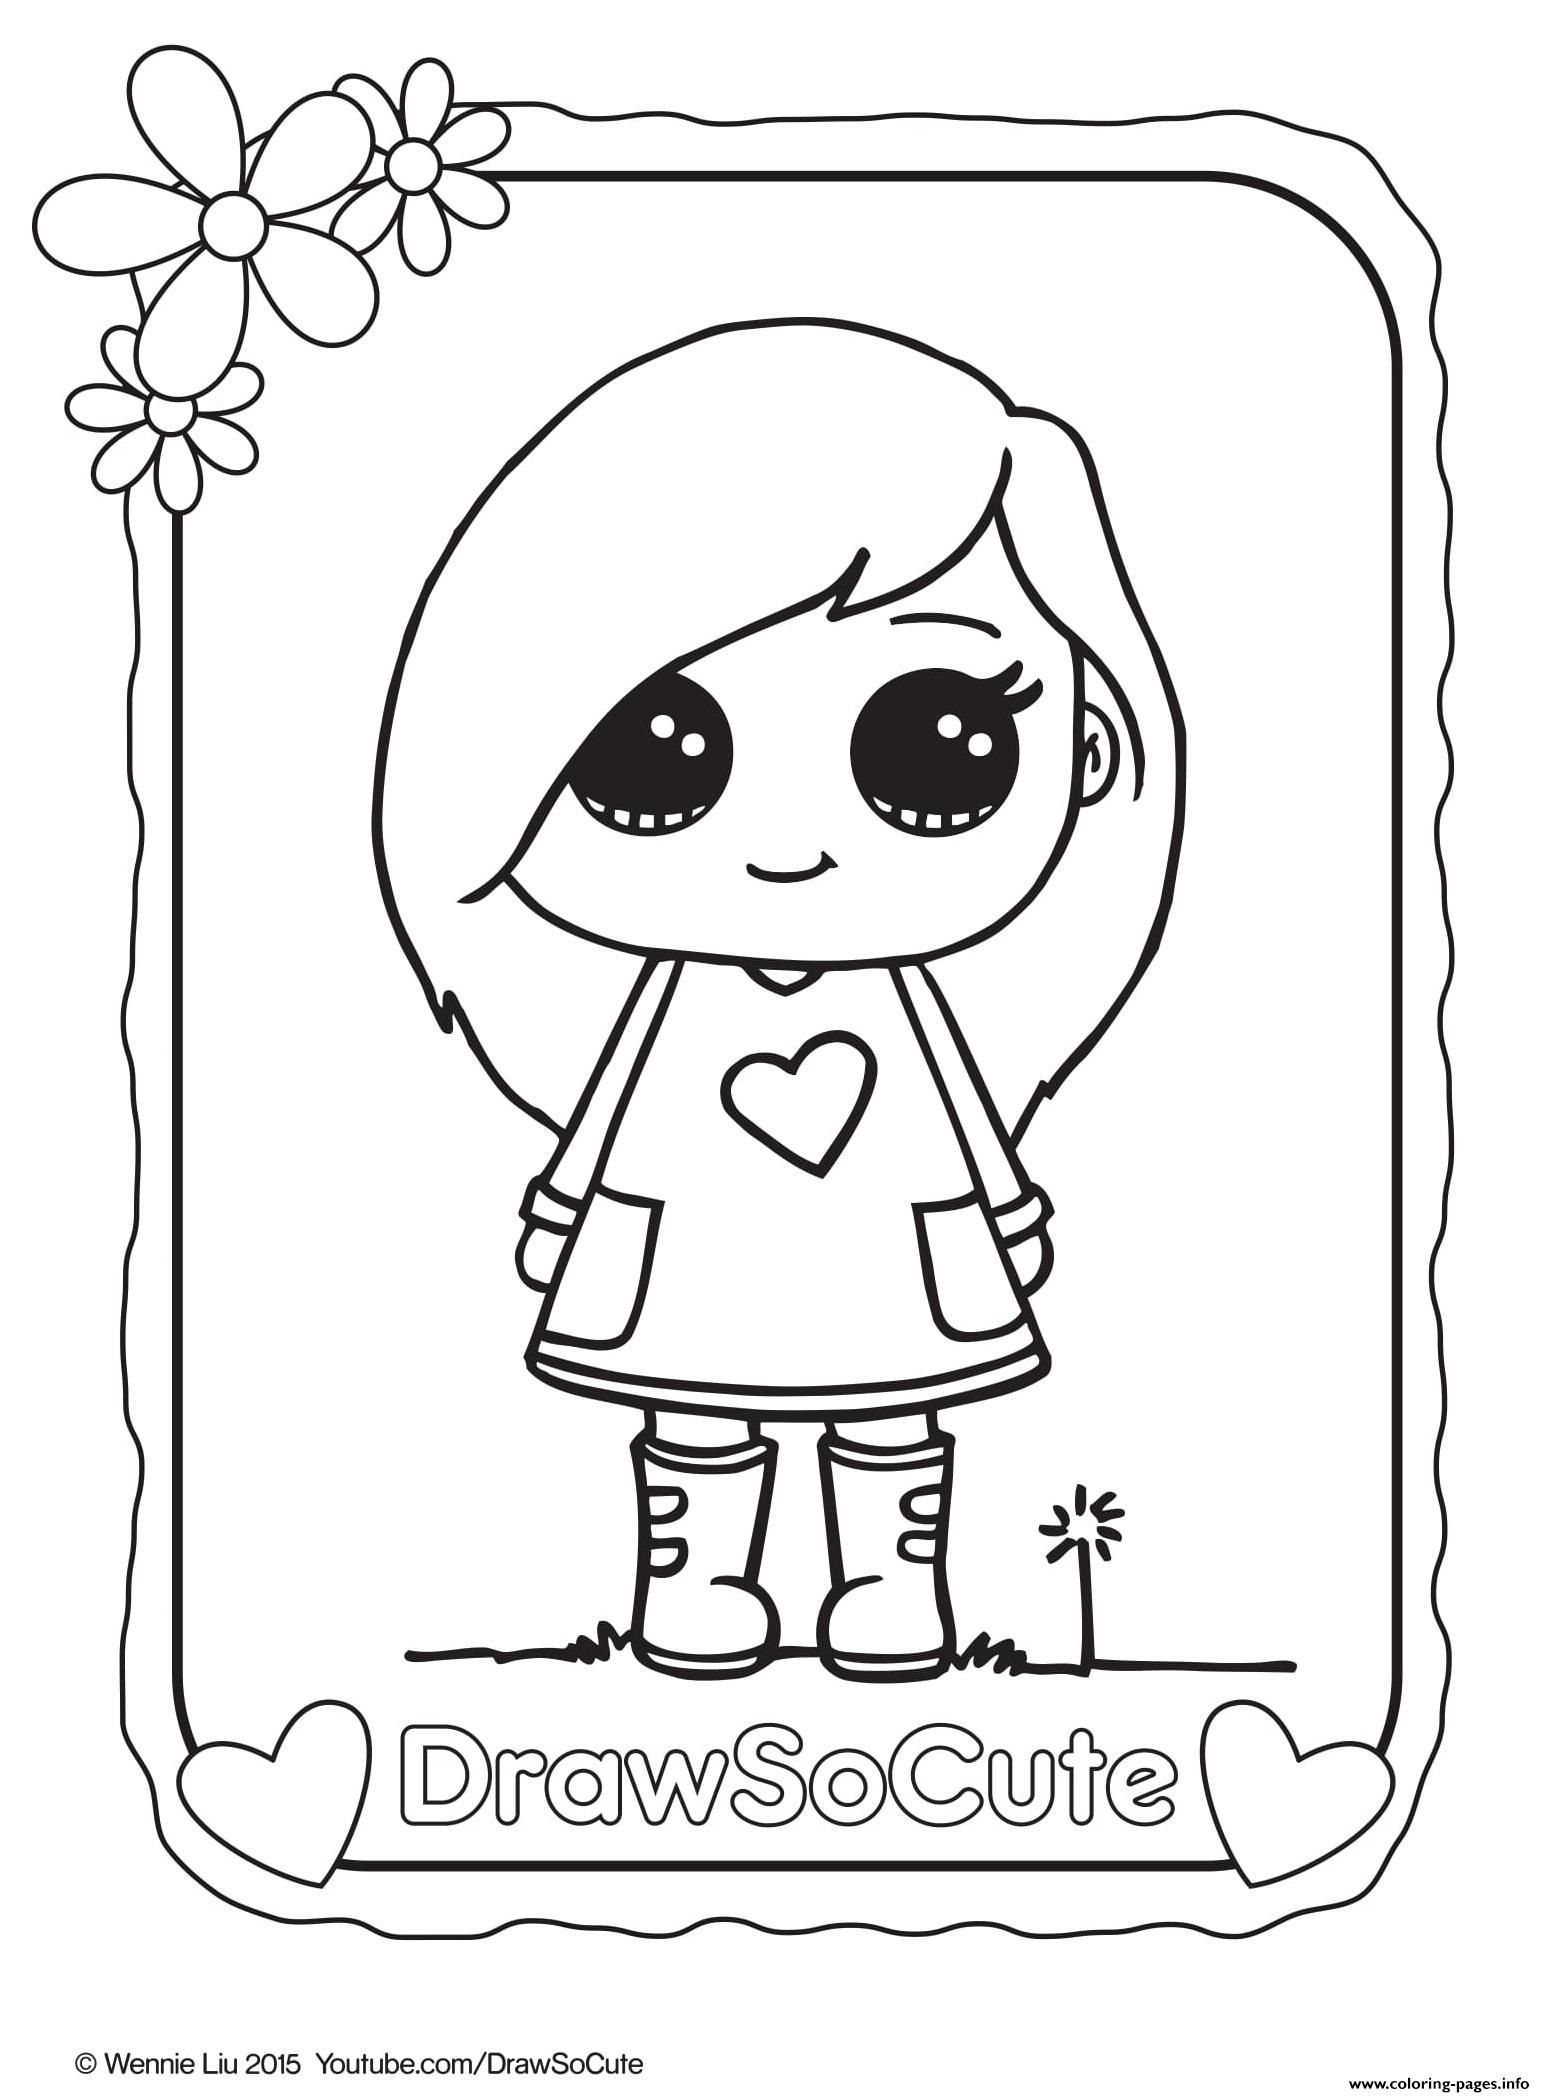 Sophie Draw So Cute Coloring Pages Printable Coloring Page Coloring Page Cute Coloring Pages Coloring Pages For Girls Coloring Pages Inspirational